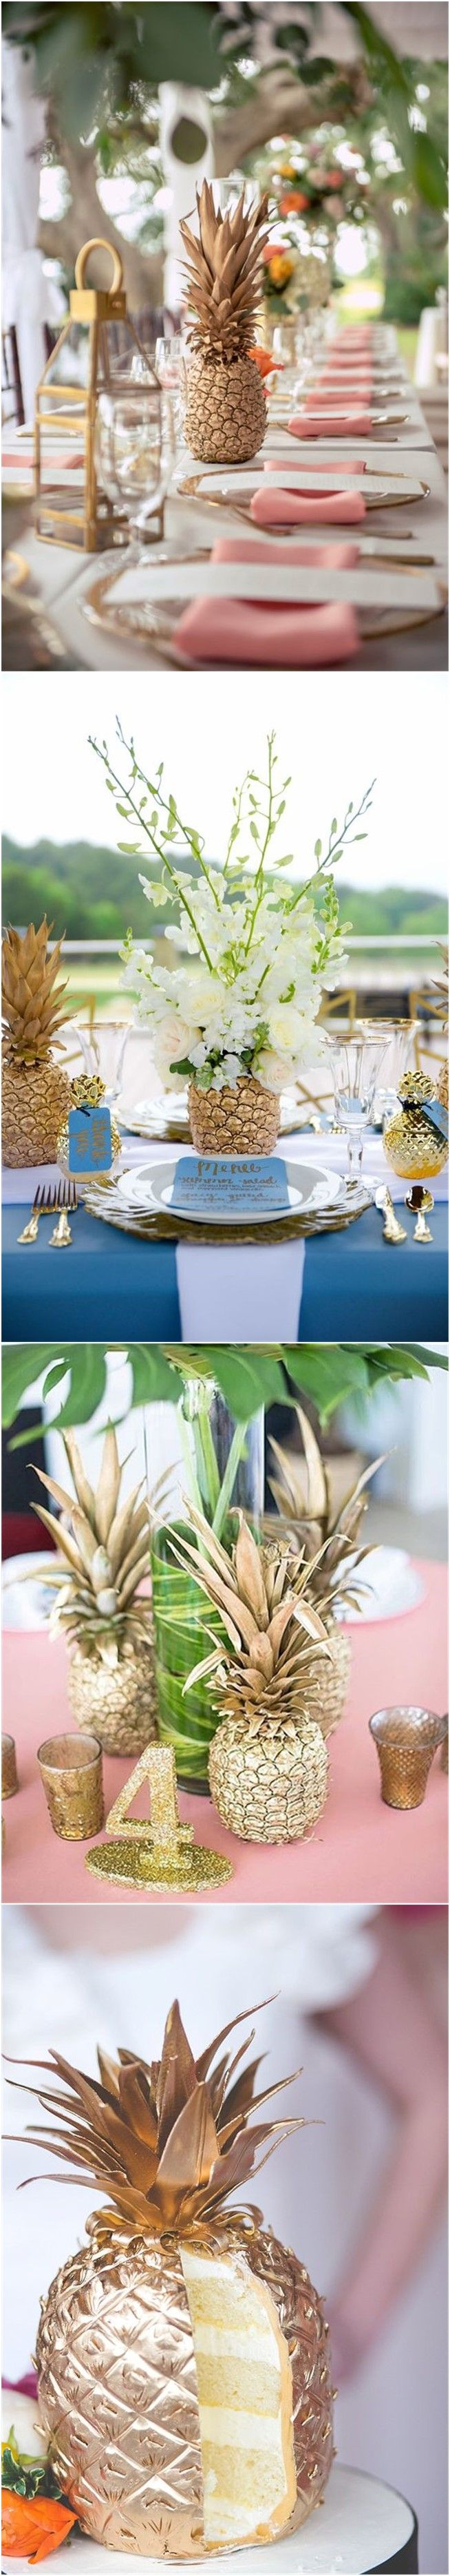 Wedding Ideas » 21 Inspirational Pineapple Wedding Ideas for Summer Wedding